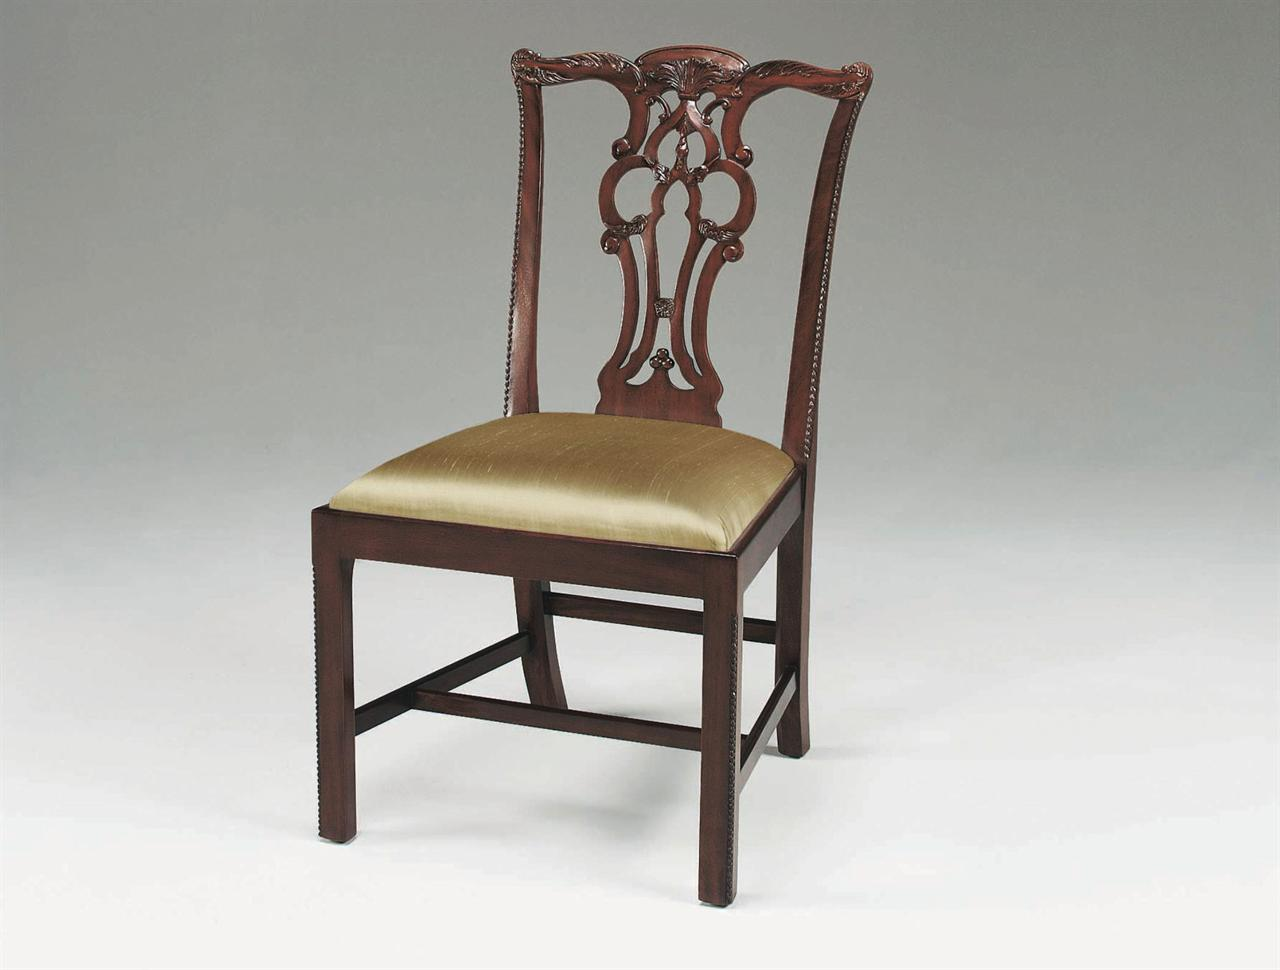 Chippendale arm chair - Solid Mahogany Chairs With Brown Mahogany Finish